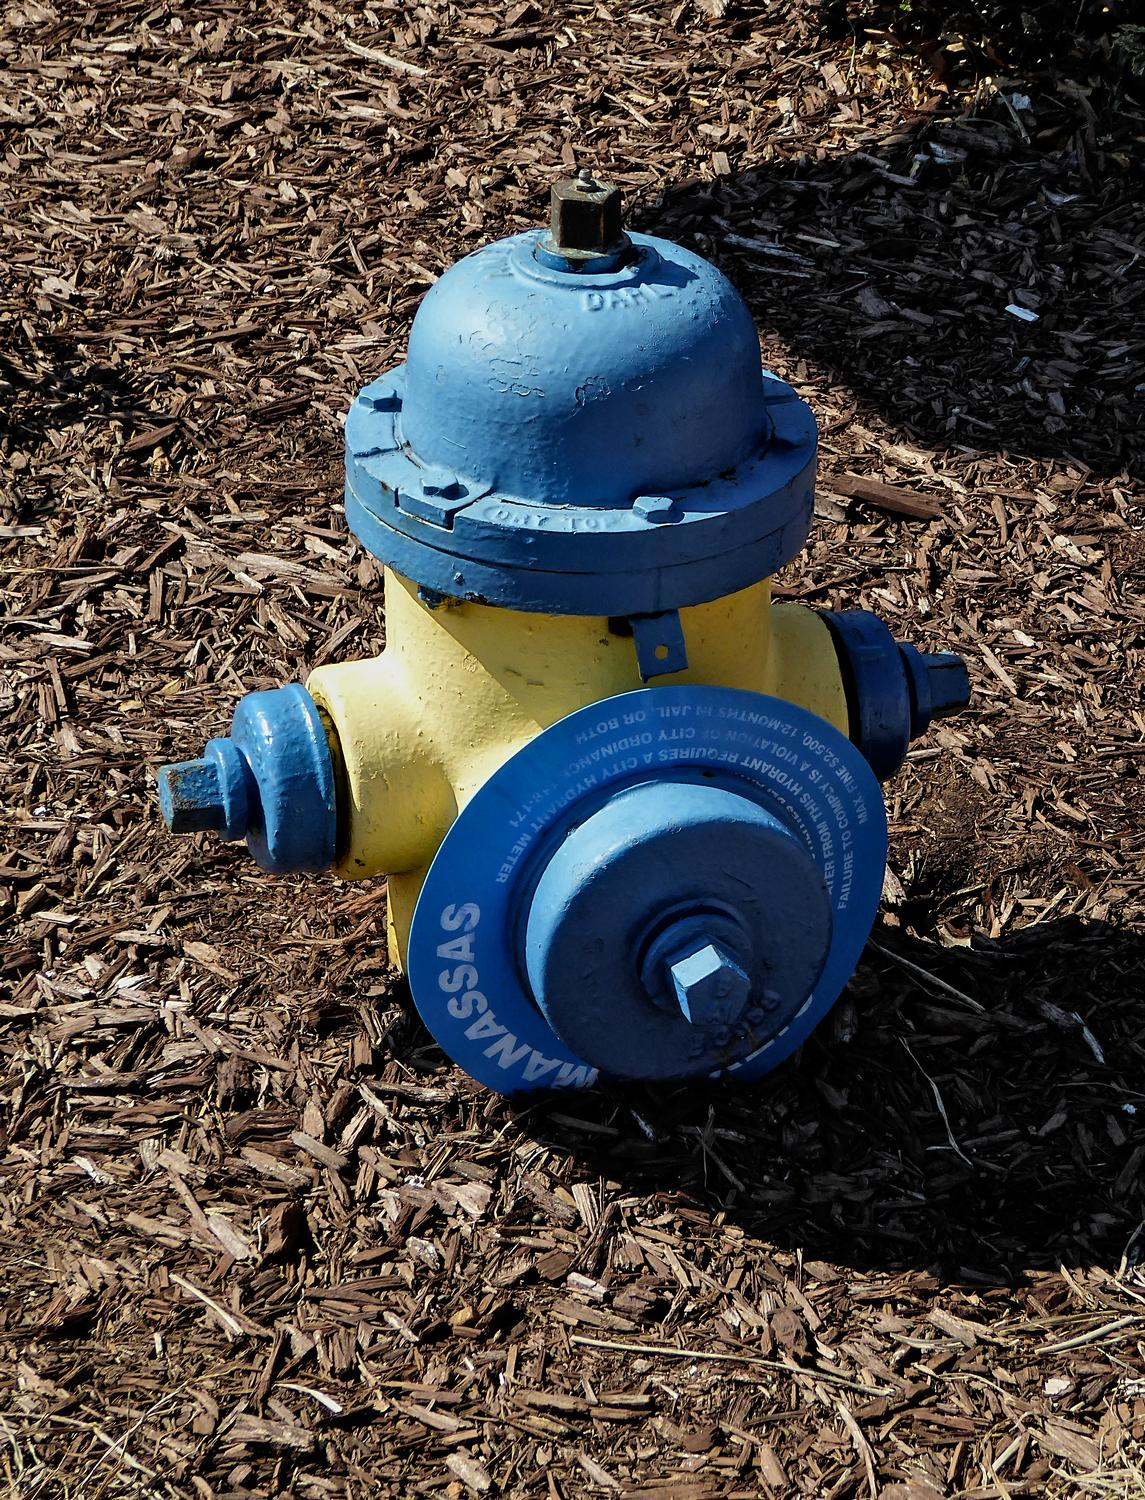 - This cute little fireplug has a tag telling where to return it in case it gets lost. - Manassas Virginia, Panasonic DMC-ZS40 - Tony Karp, design, art, photography, techno-impressionist, techno-impressionism, aerial photography , drone , drones , dji , mavic pro , video , 3D printing - Books -